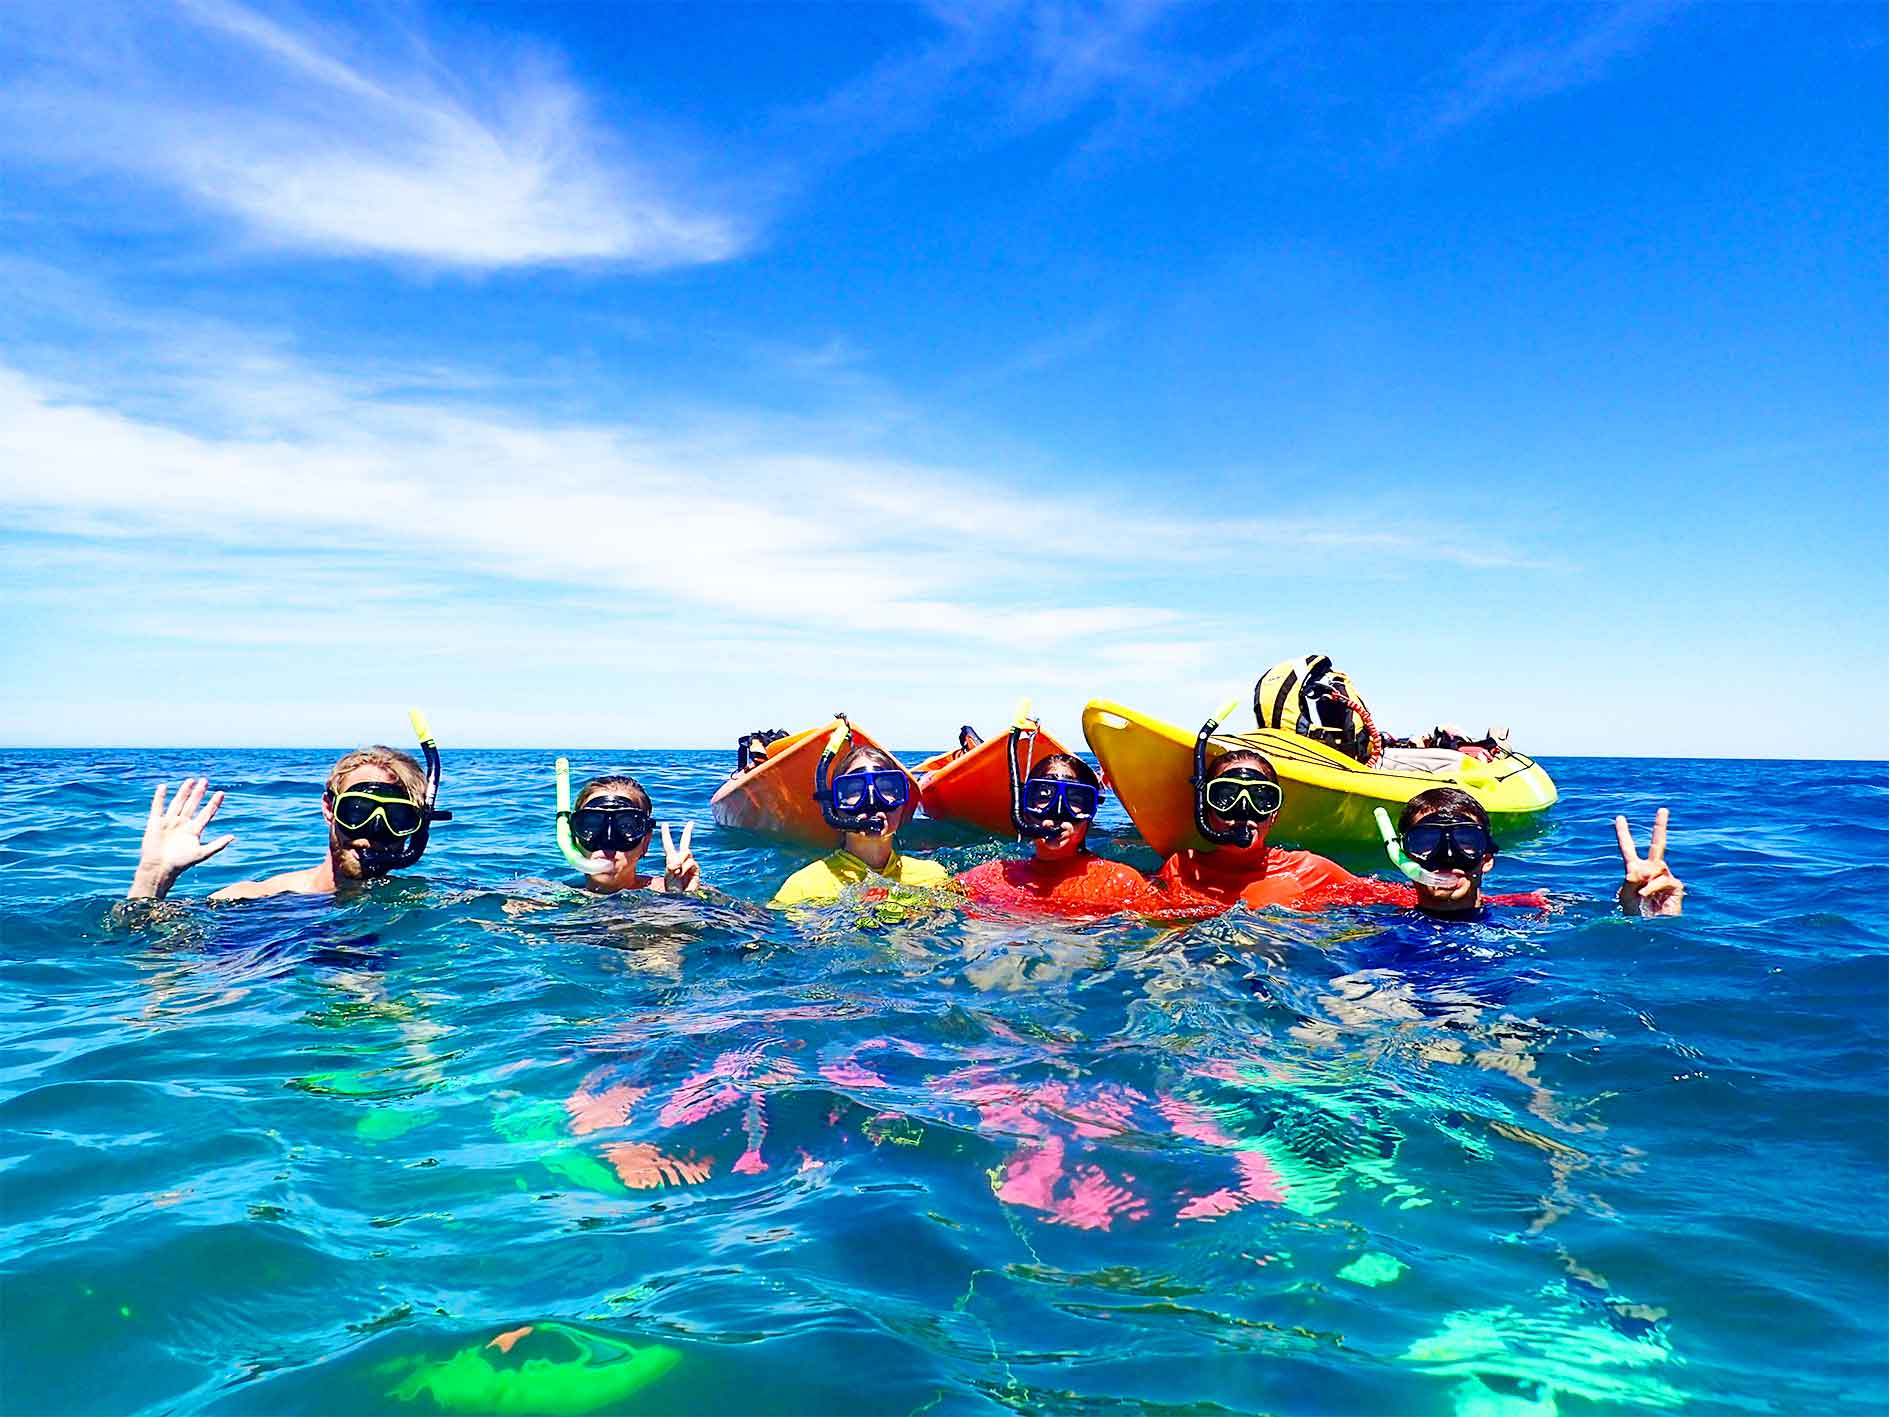 Turtle Tour, Sea kayak and snorkel tour, eco tour, exmouth adventure co, exmouth, western australia, wa, ningaloo reef, coral coast